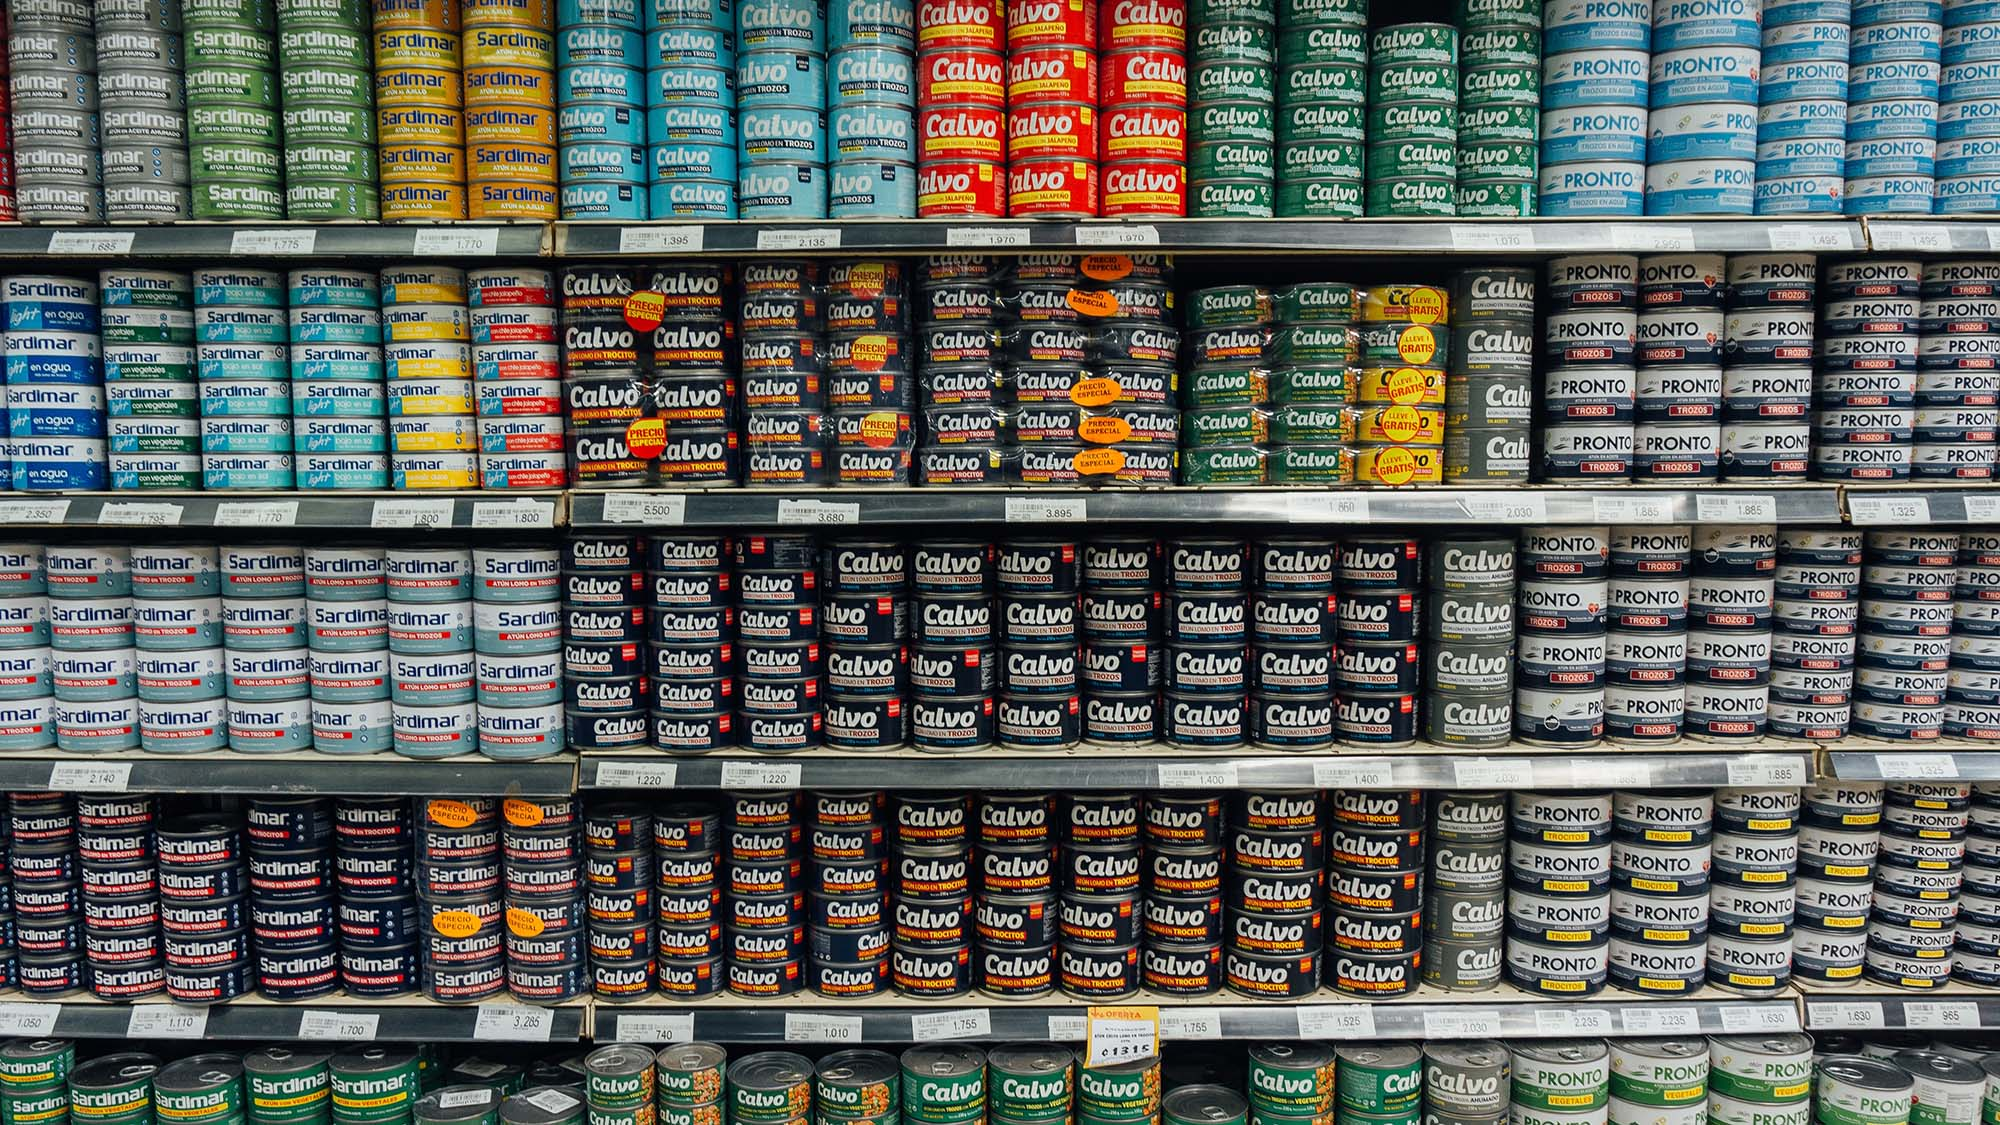 Cans of tuna fish stacked on shelves